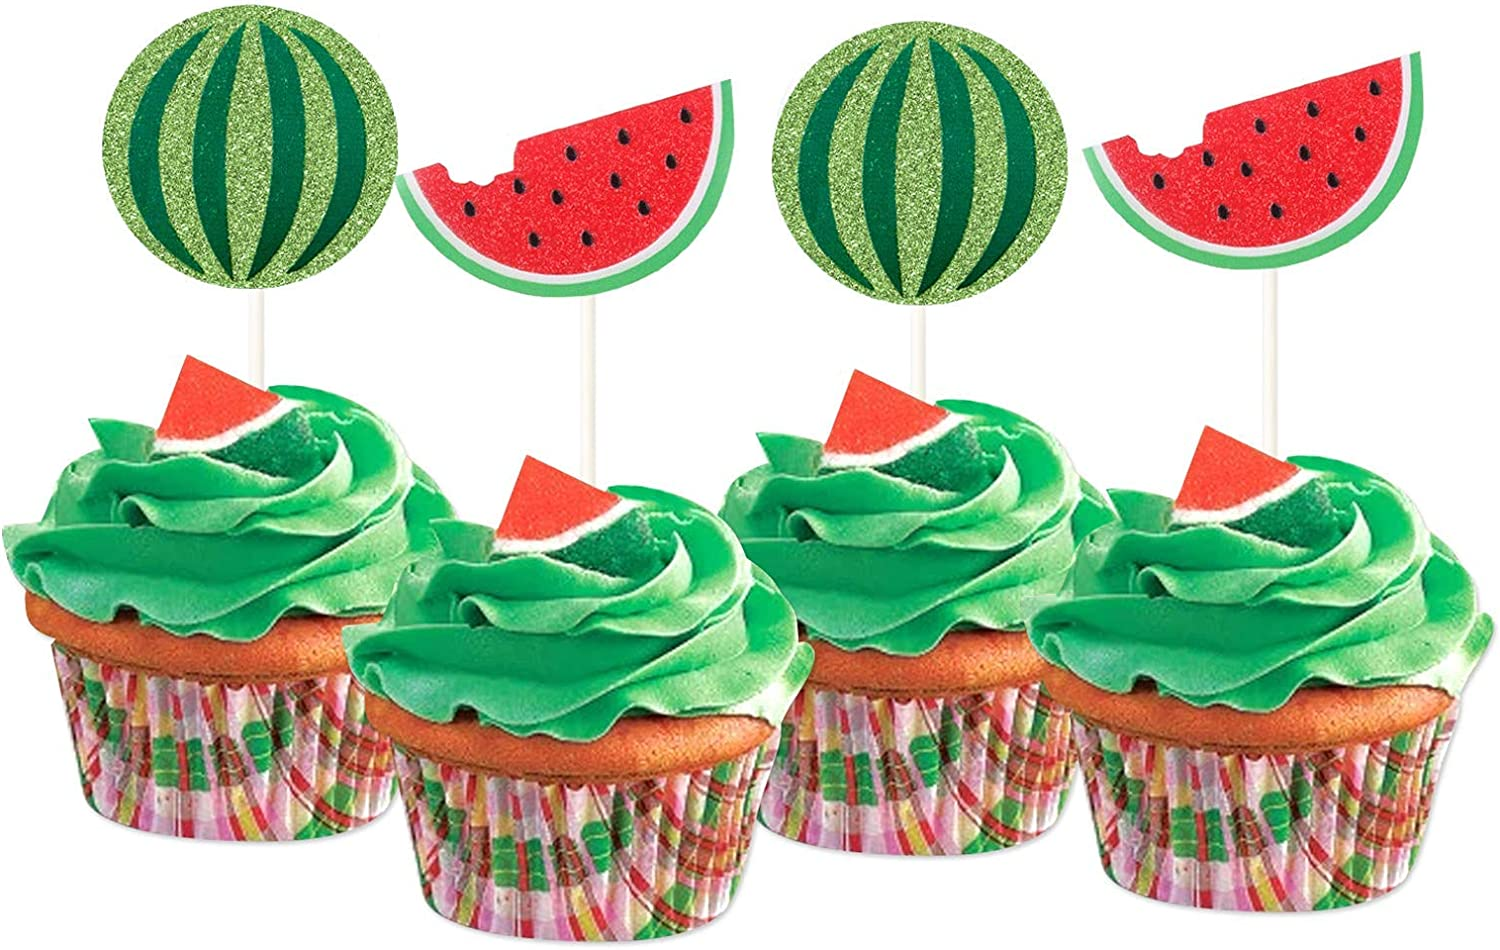 24Pcs Glitter Watermelon Cupcake Toppers Fruits Theme Party Dessert Cupcake Picks for Summer Birthday Baby Shower, One in a Melon First Birthday, Tropical Party Decoration Supplies